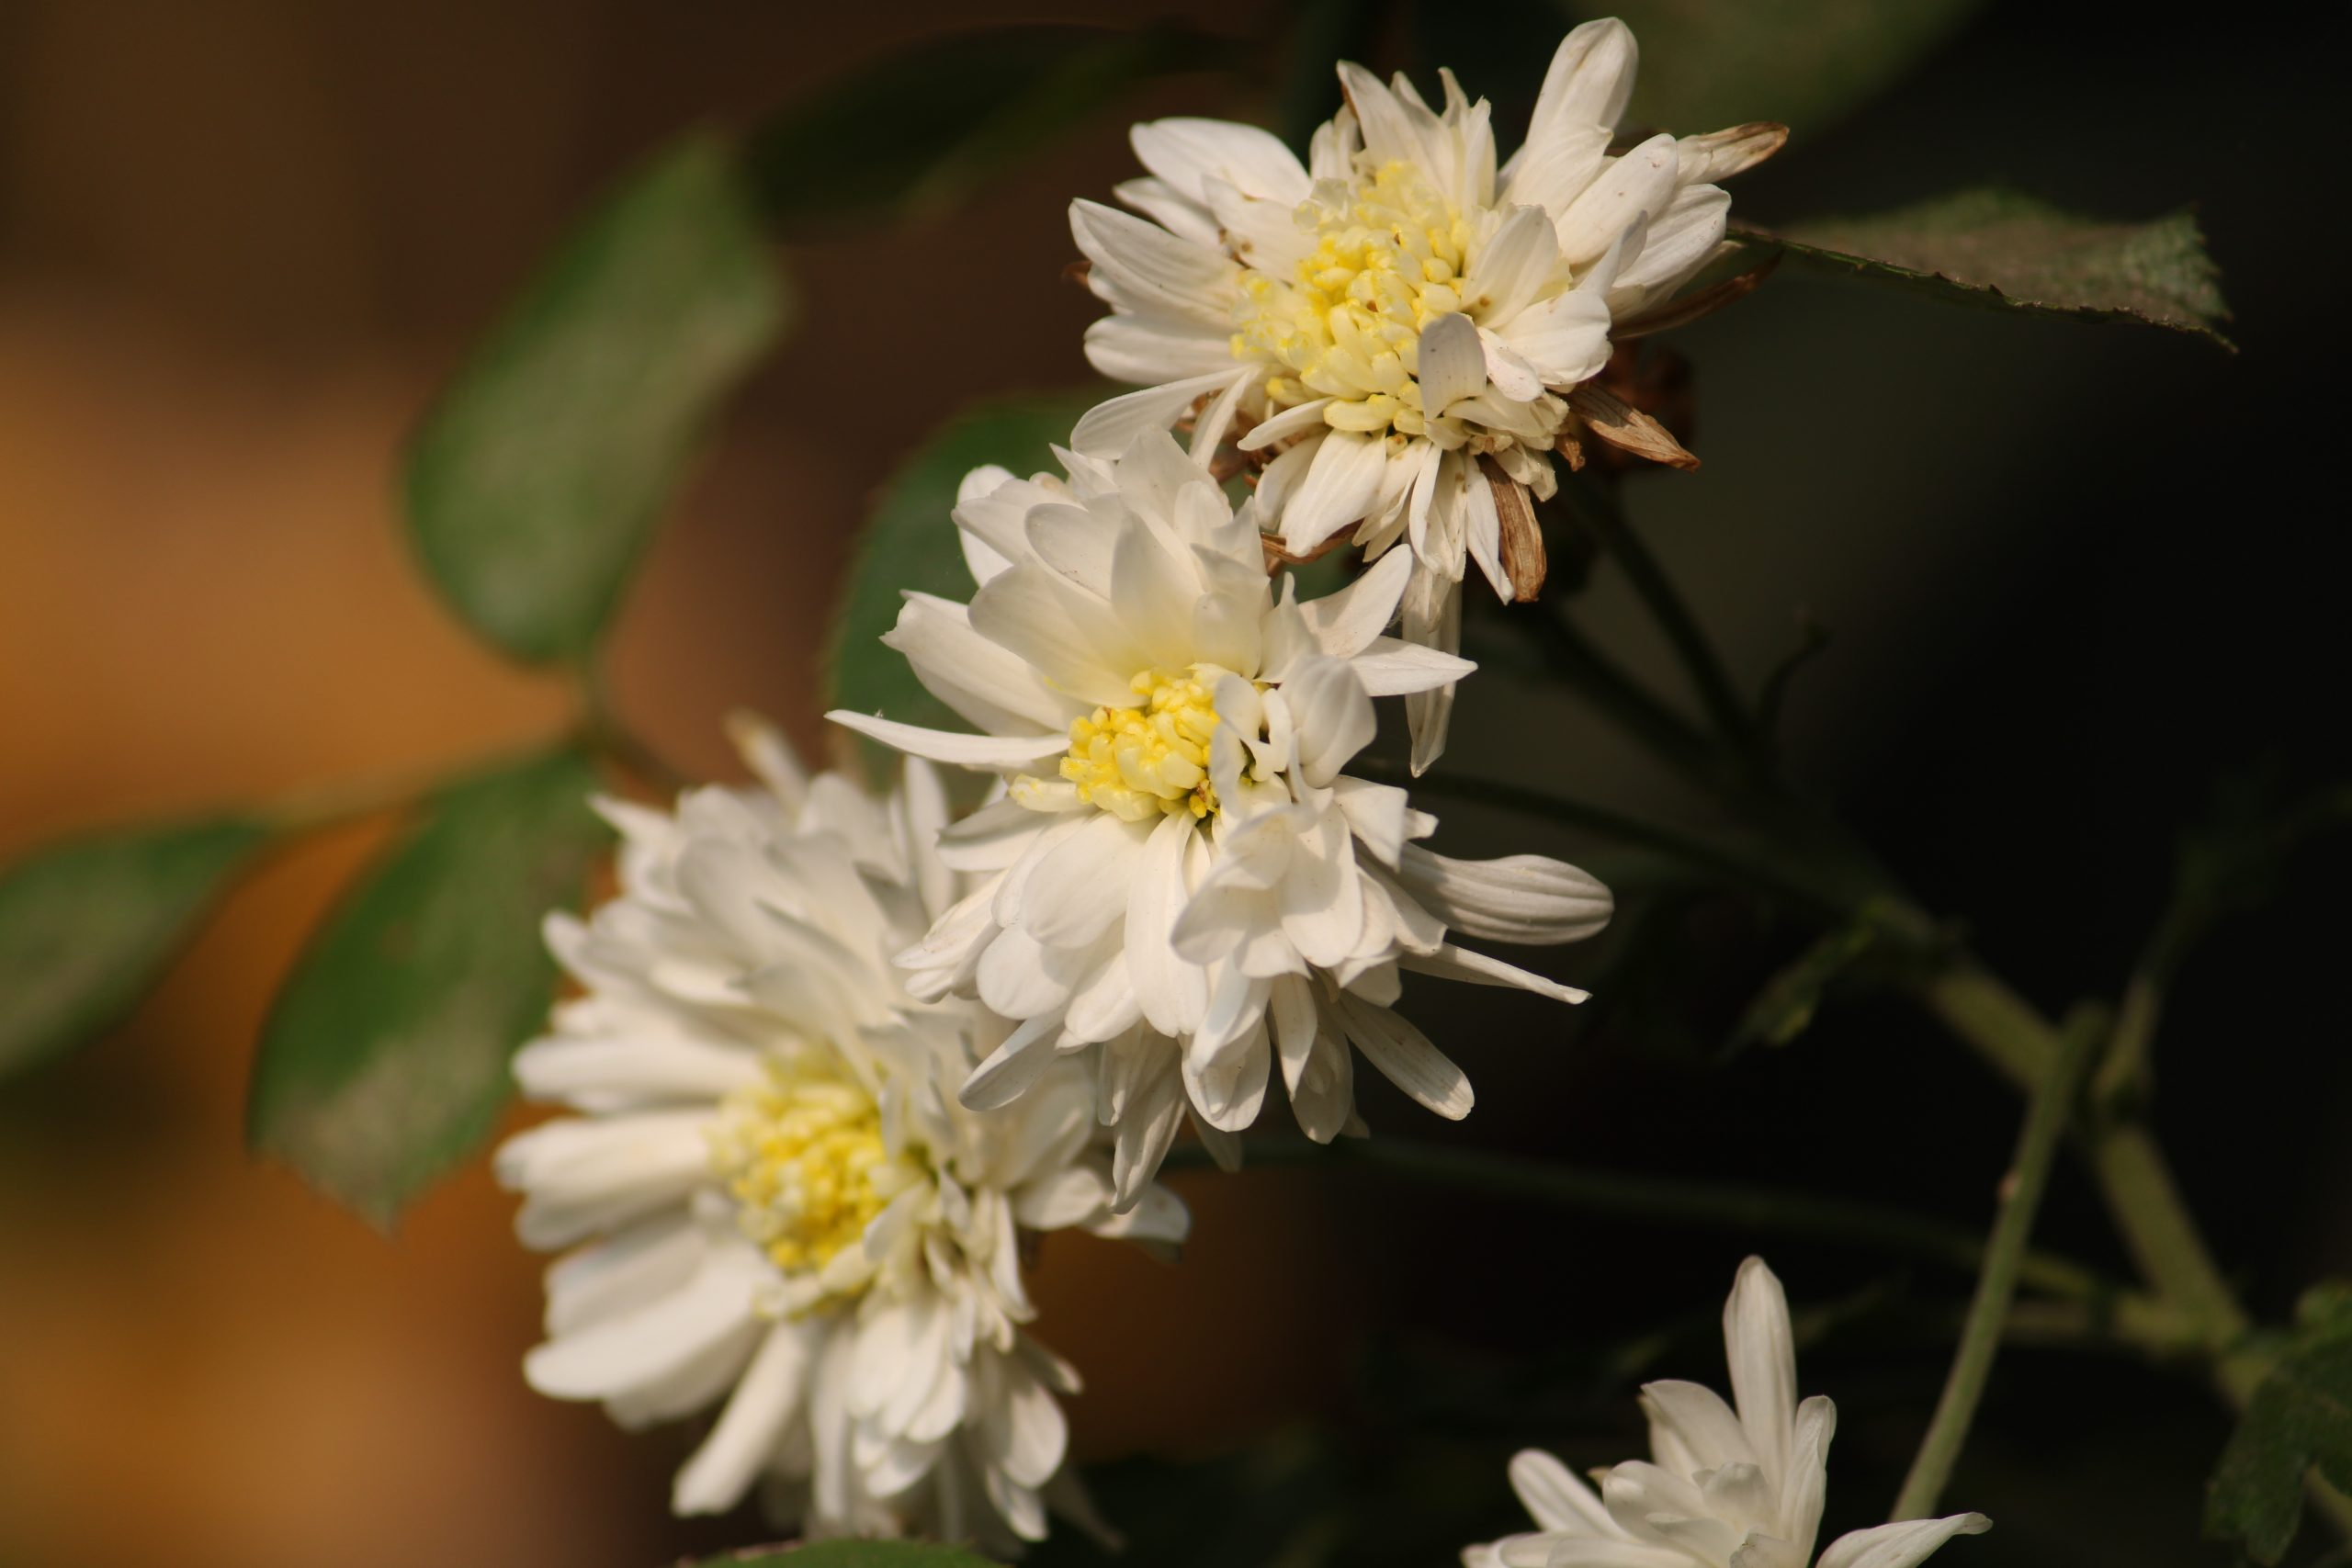 White flowers in a garden